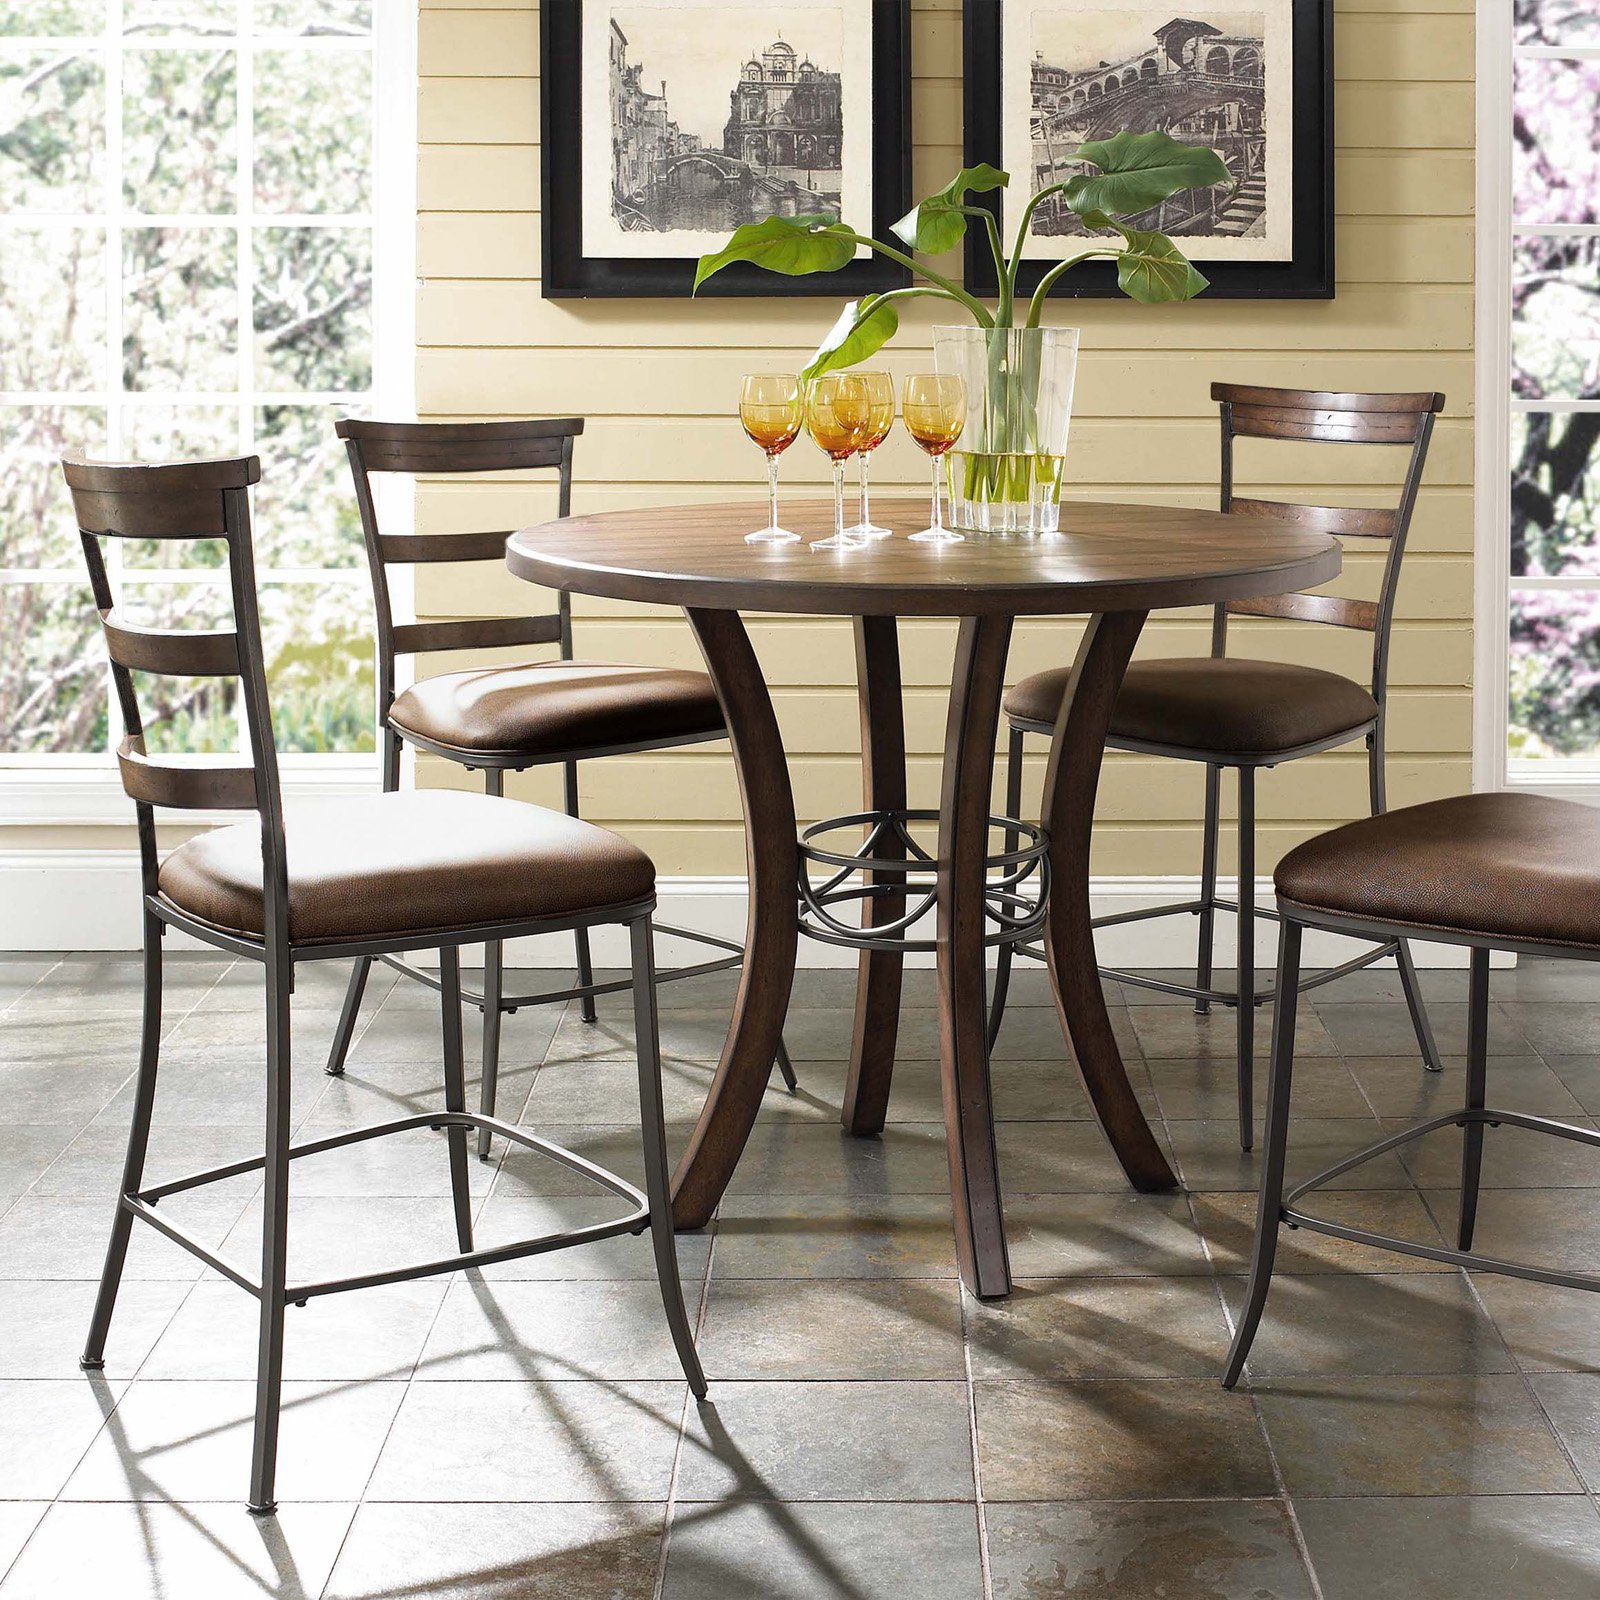 Hillsdale Cameron 5 Piece Counter Height Round Wood Dining Table Set With Ladder Back Chairs Walmart Com Walmart Com